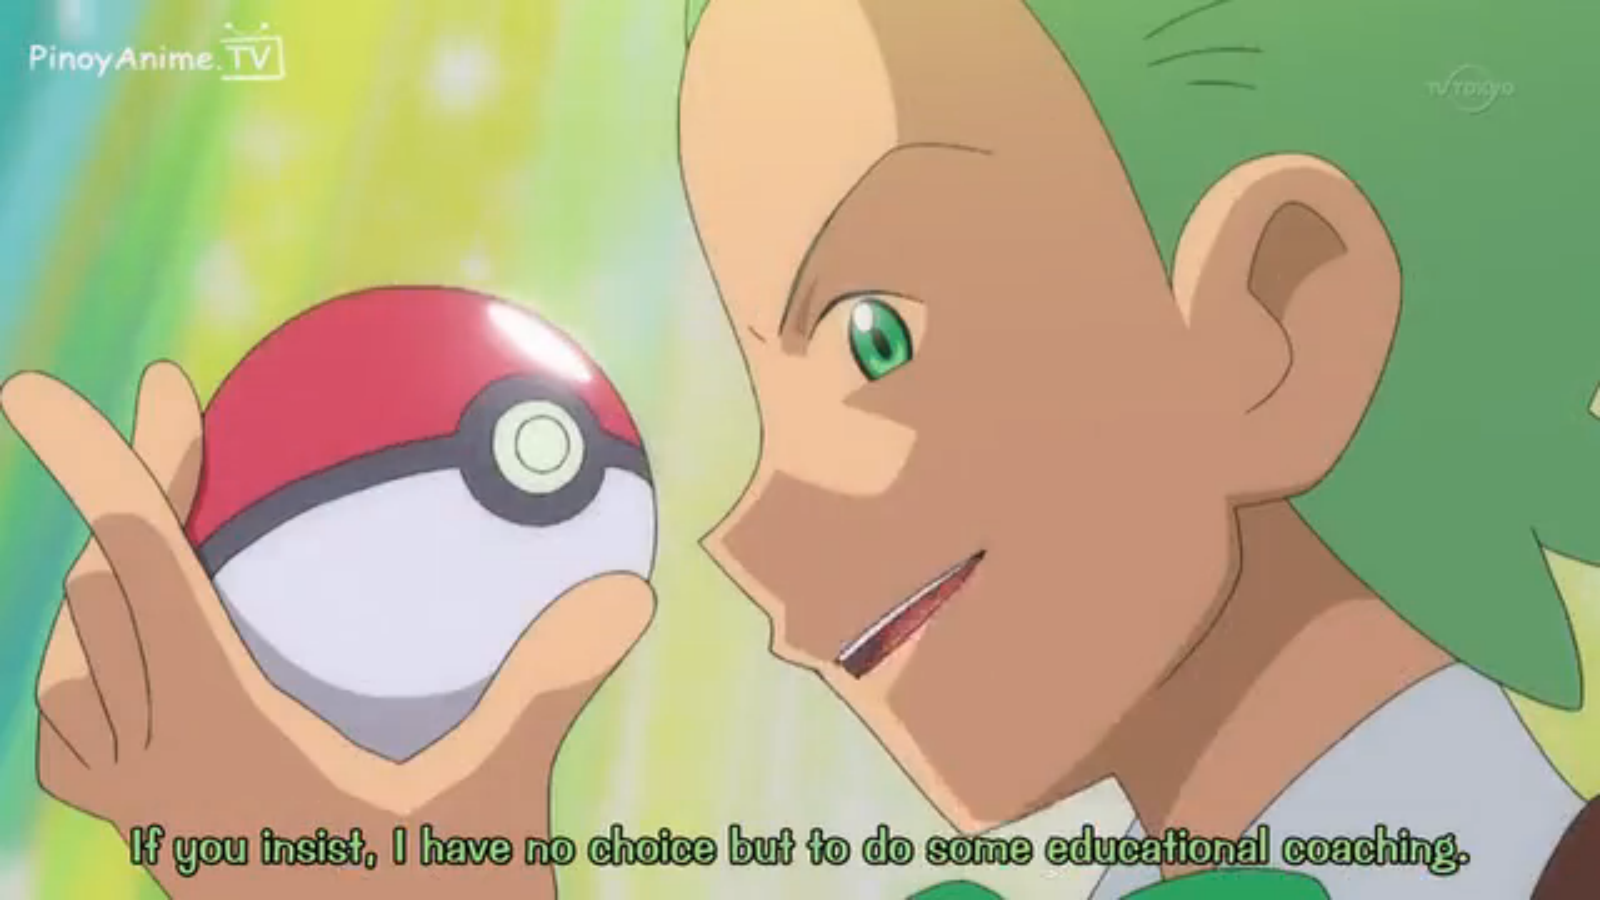 Yet another Cilan rape face XD